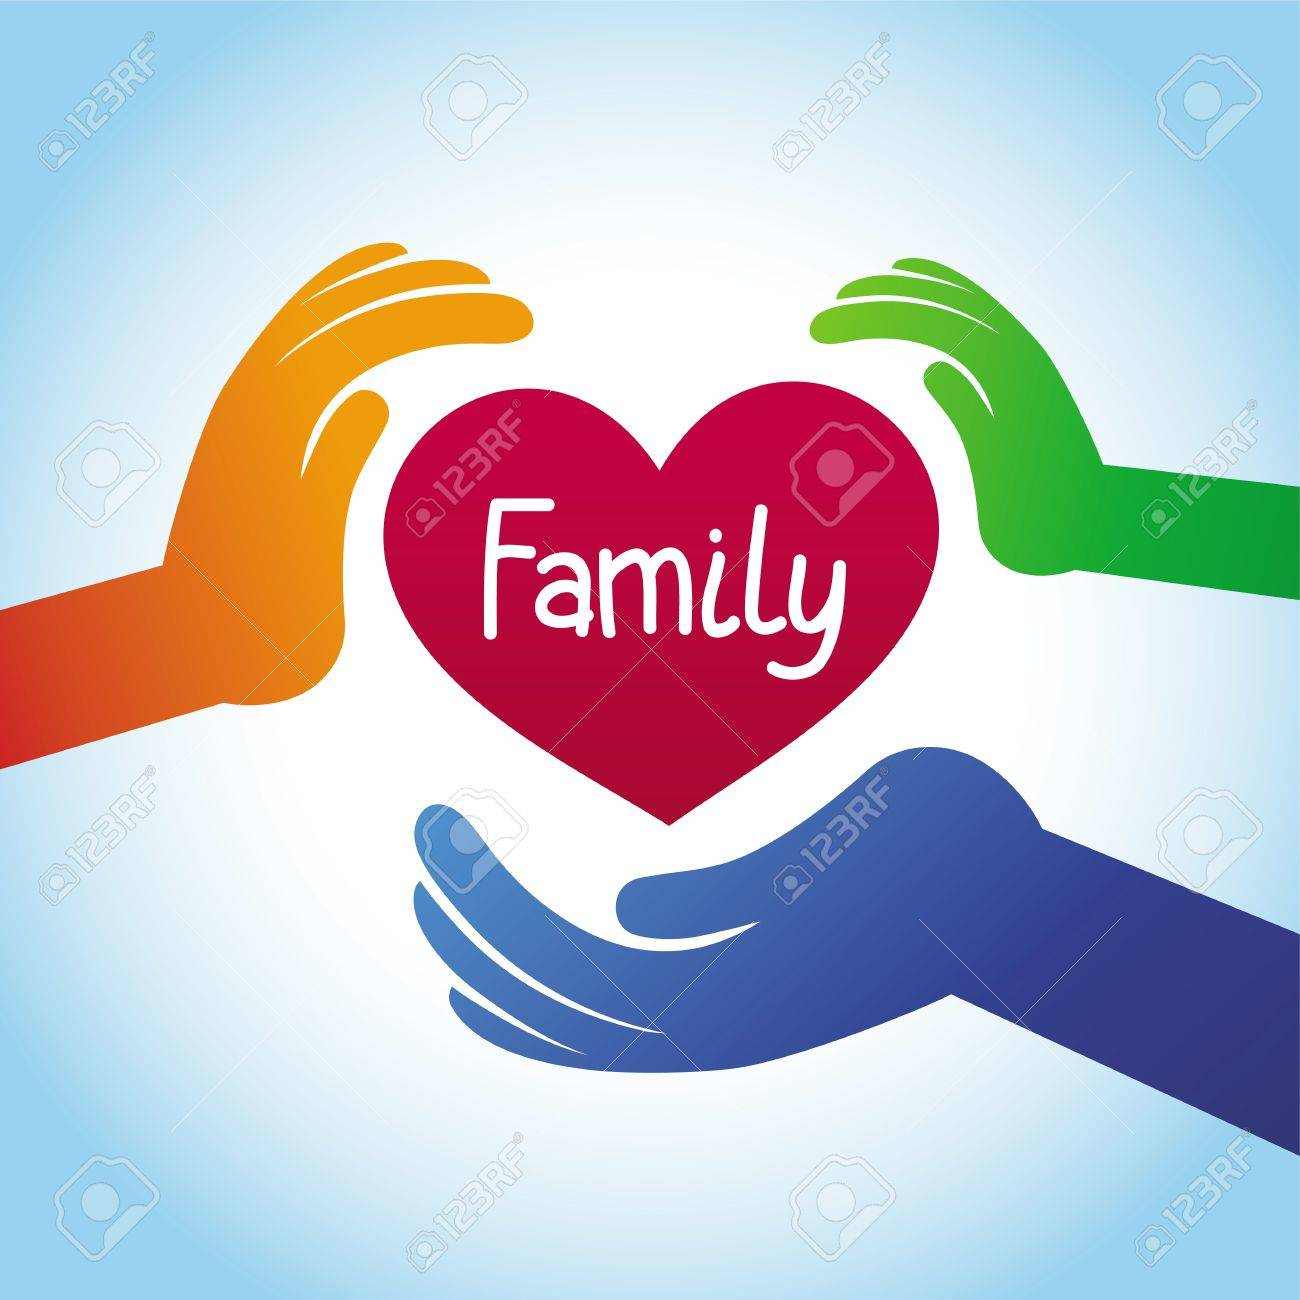 family concept - heart shape and hands Stock Vector - 20958864